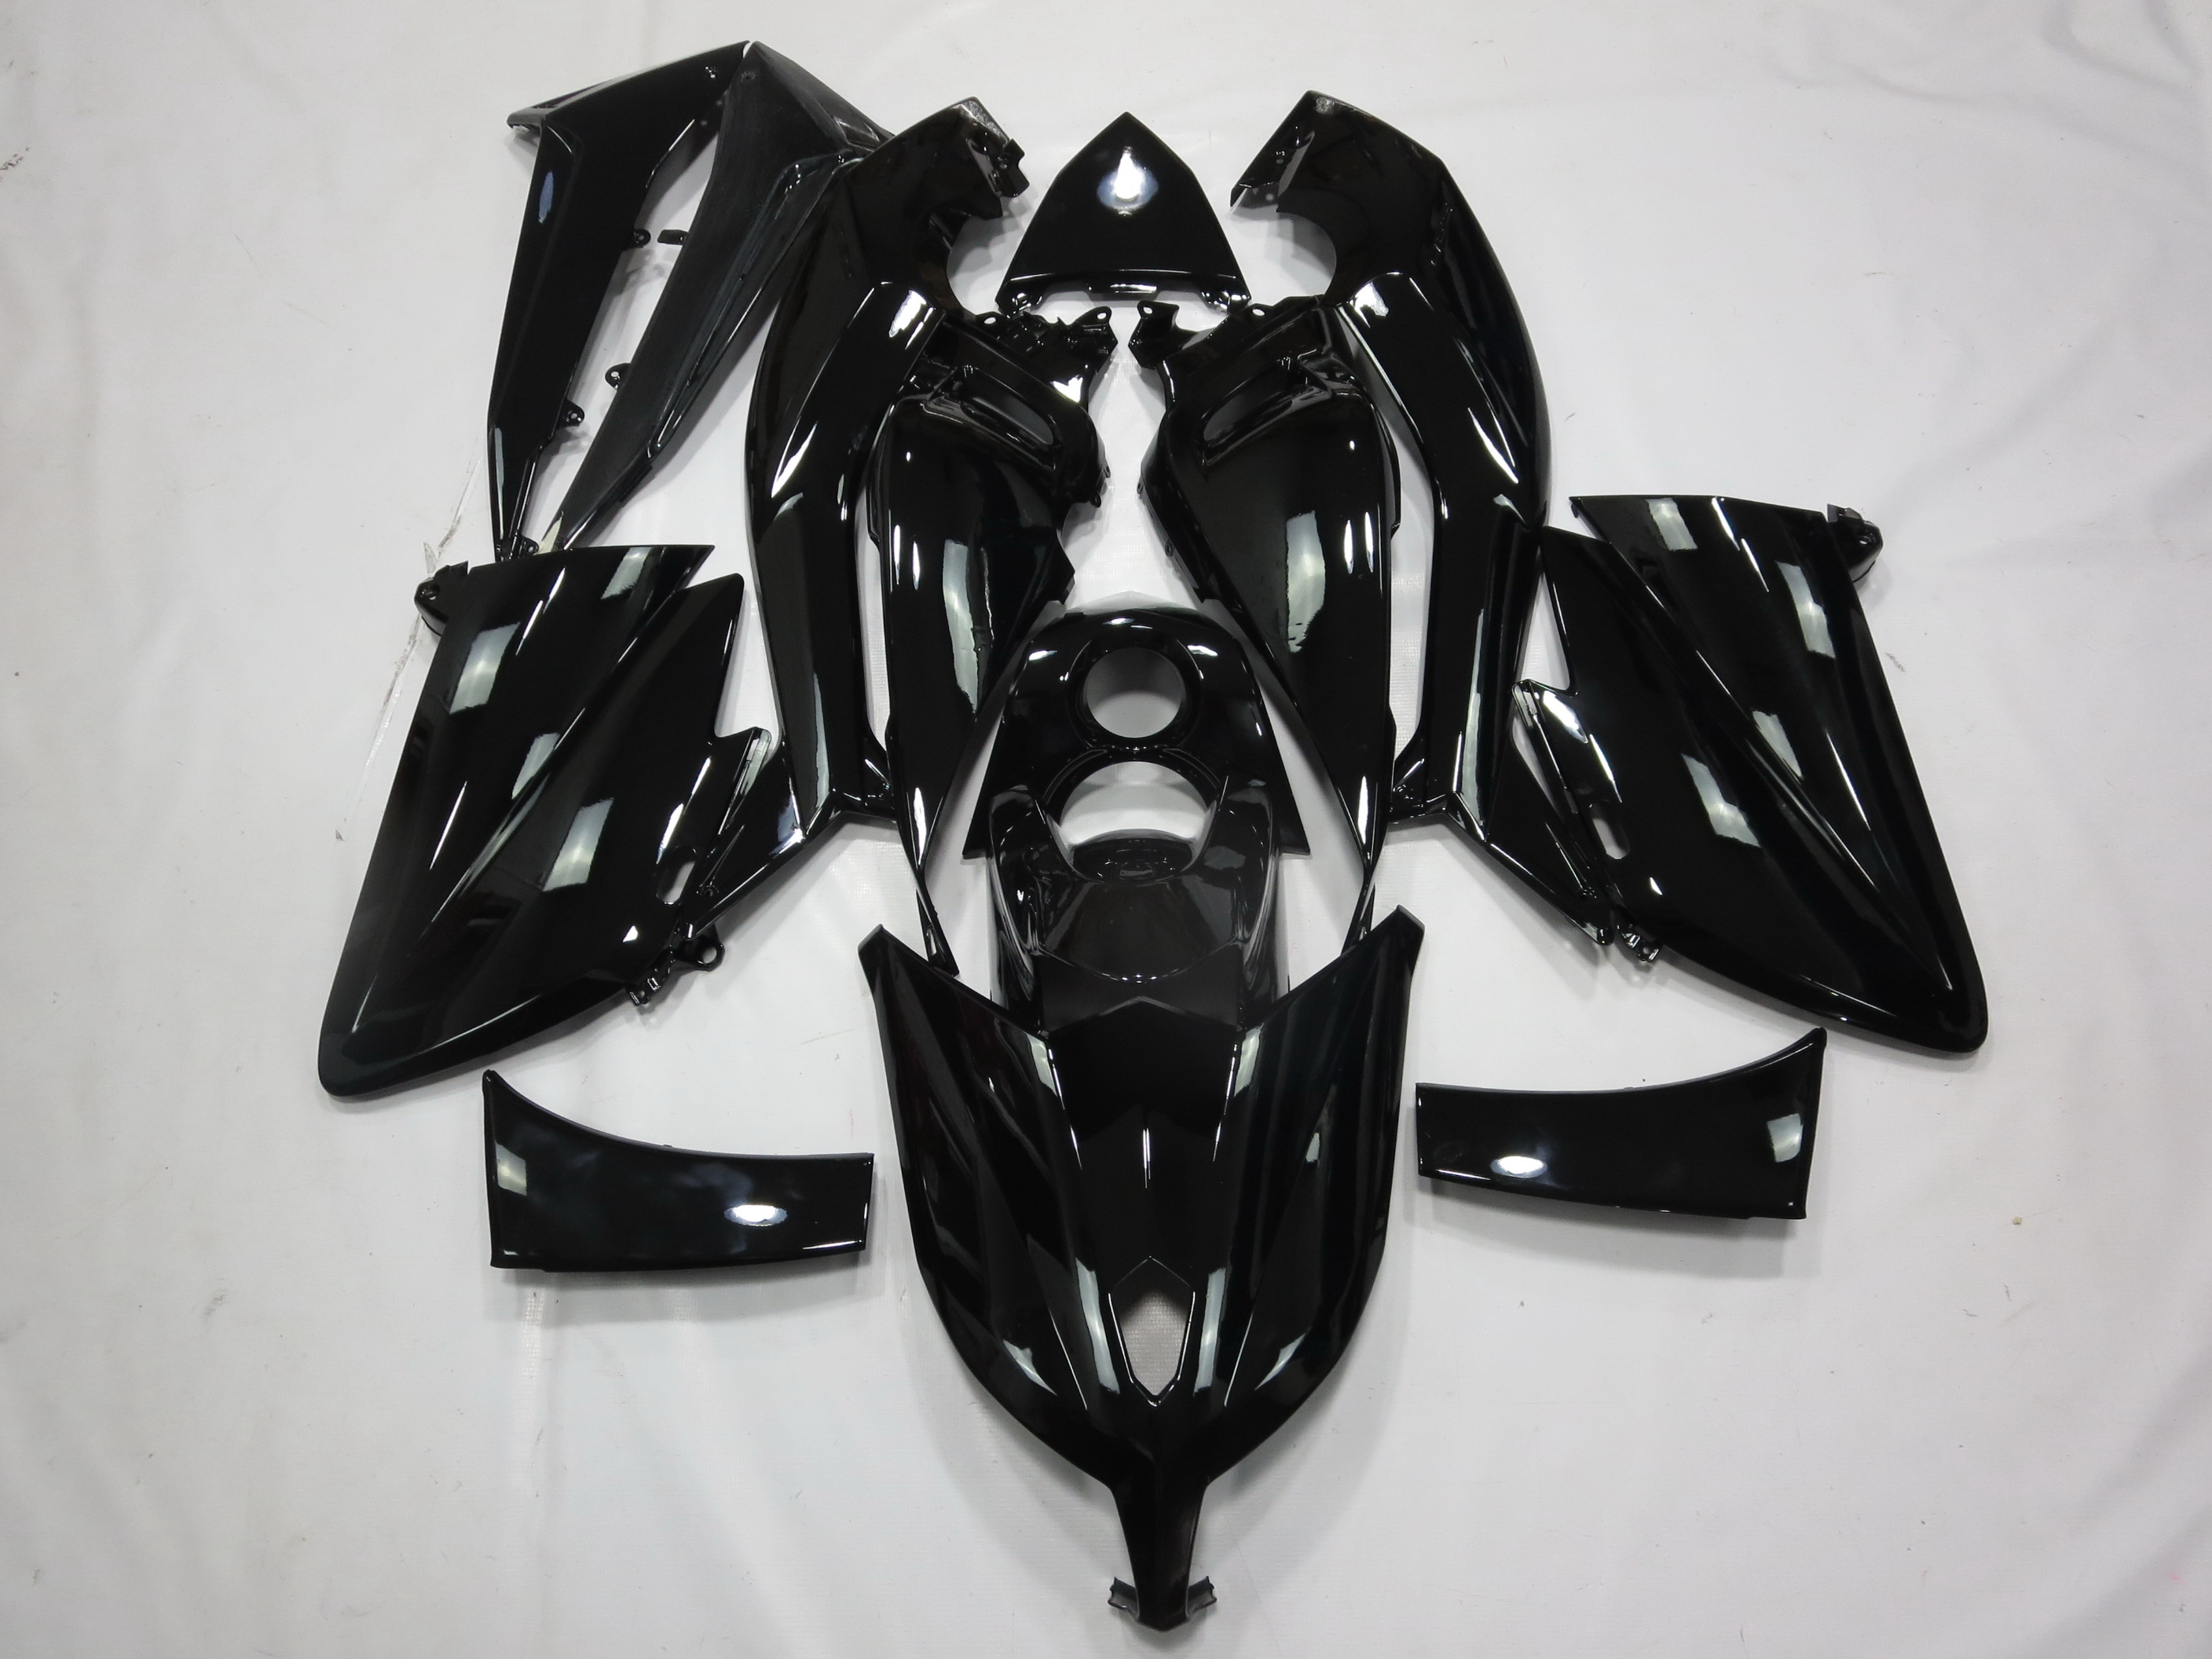 for Motorcycle  ABS Plastic Injection Fairing Kit Bodywork Bolts for T MAX tmax530 Tmax 530 2012 2014 good uv painted|bolt yamaha|bolt kit|bolts fairings - title=